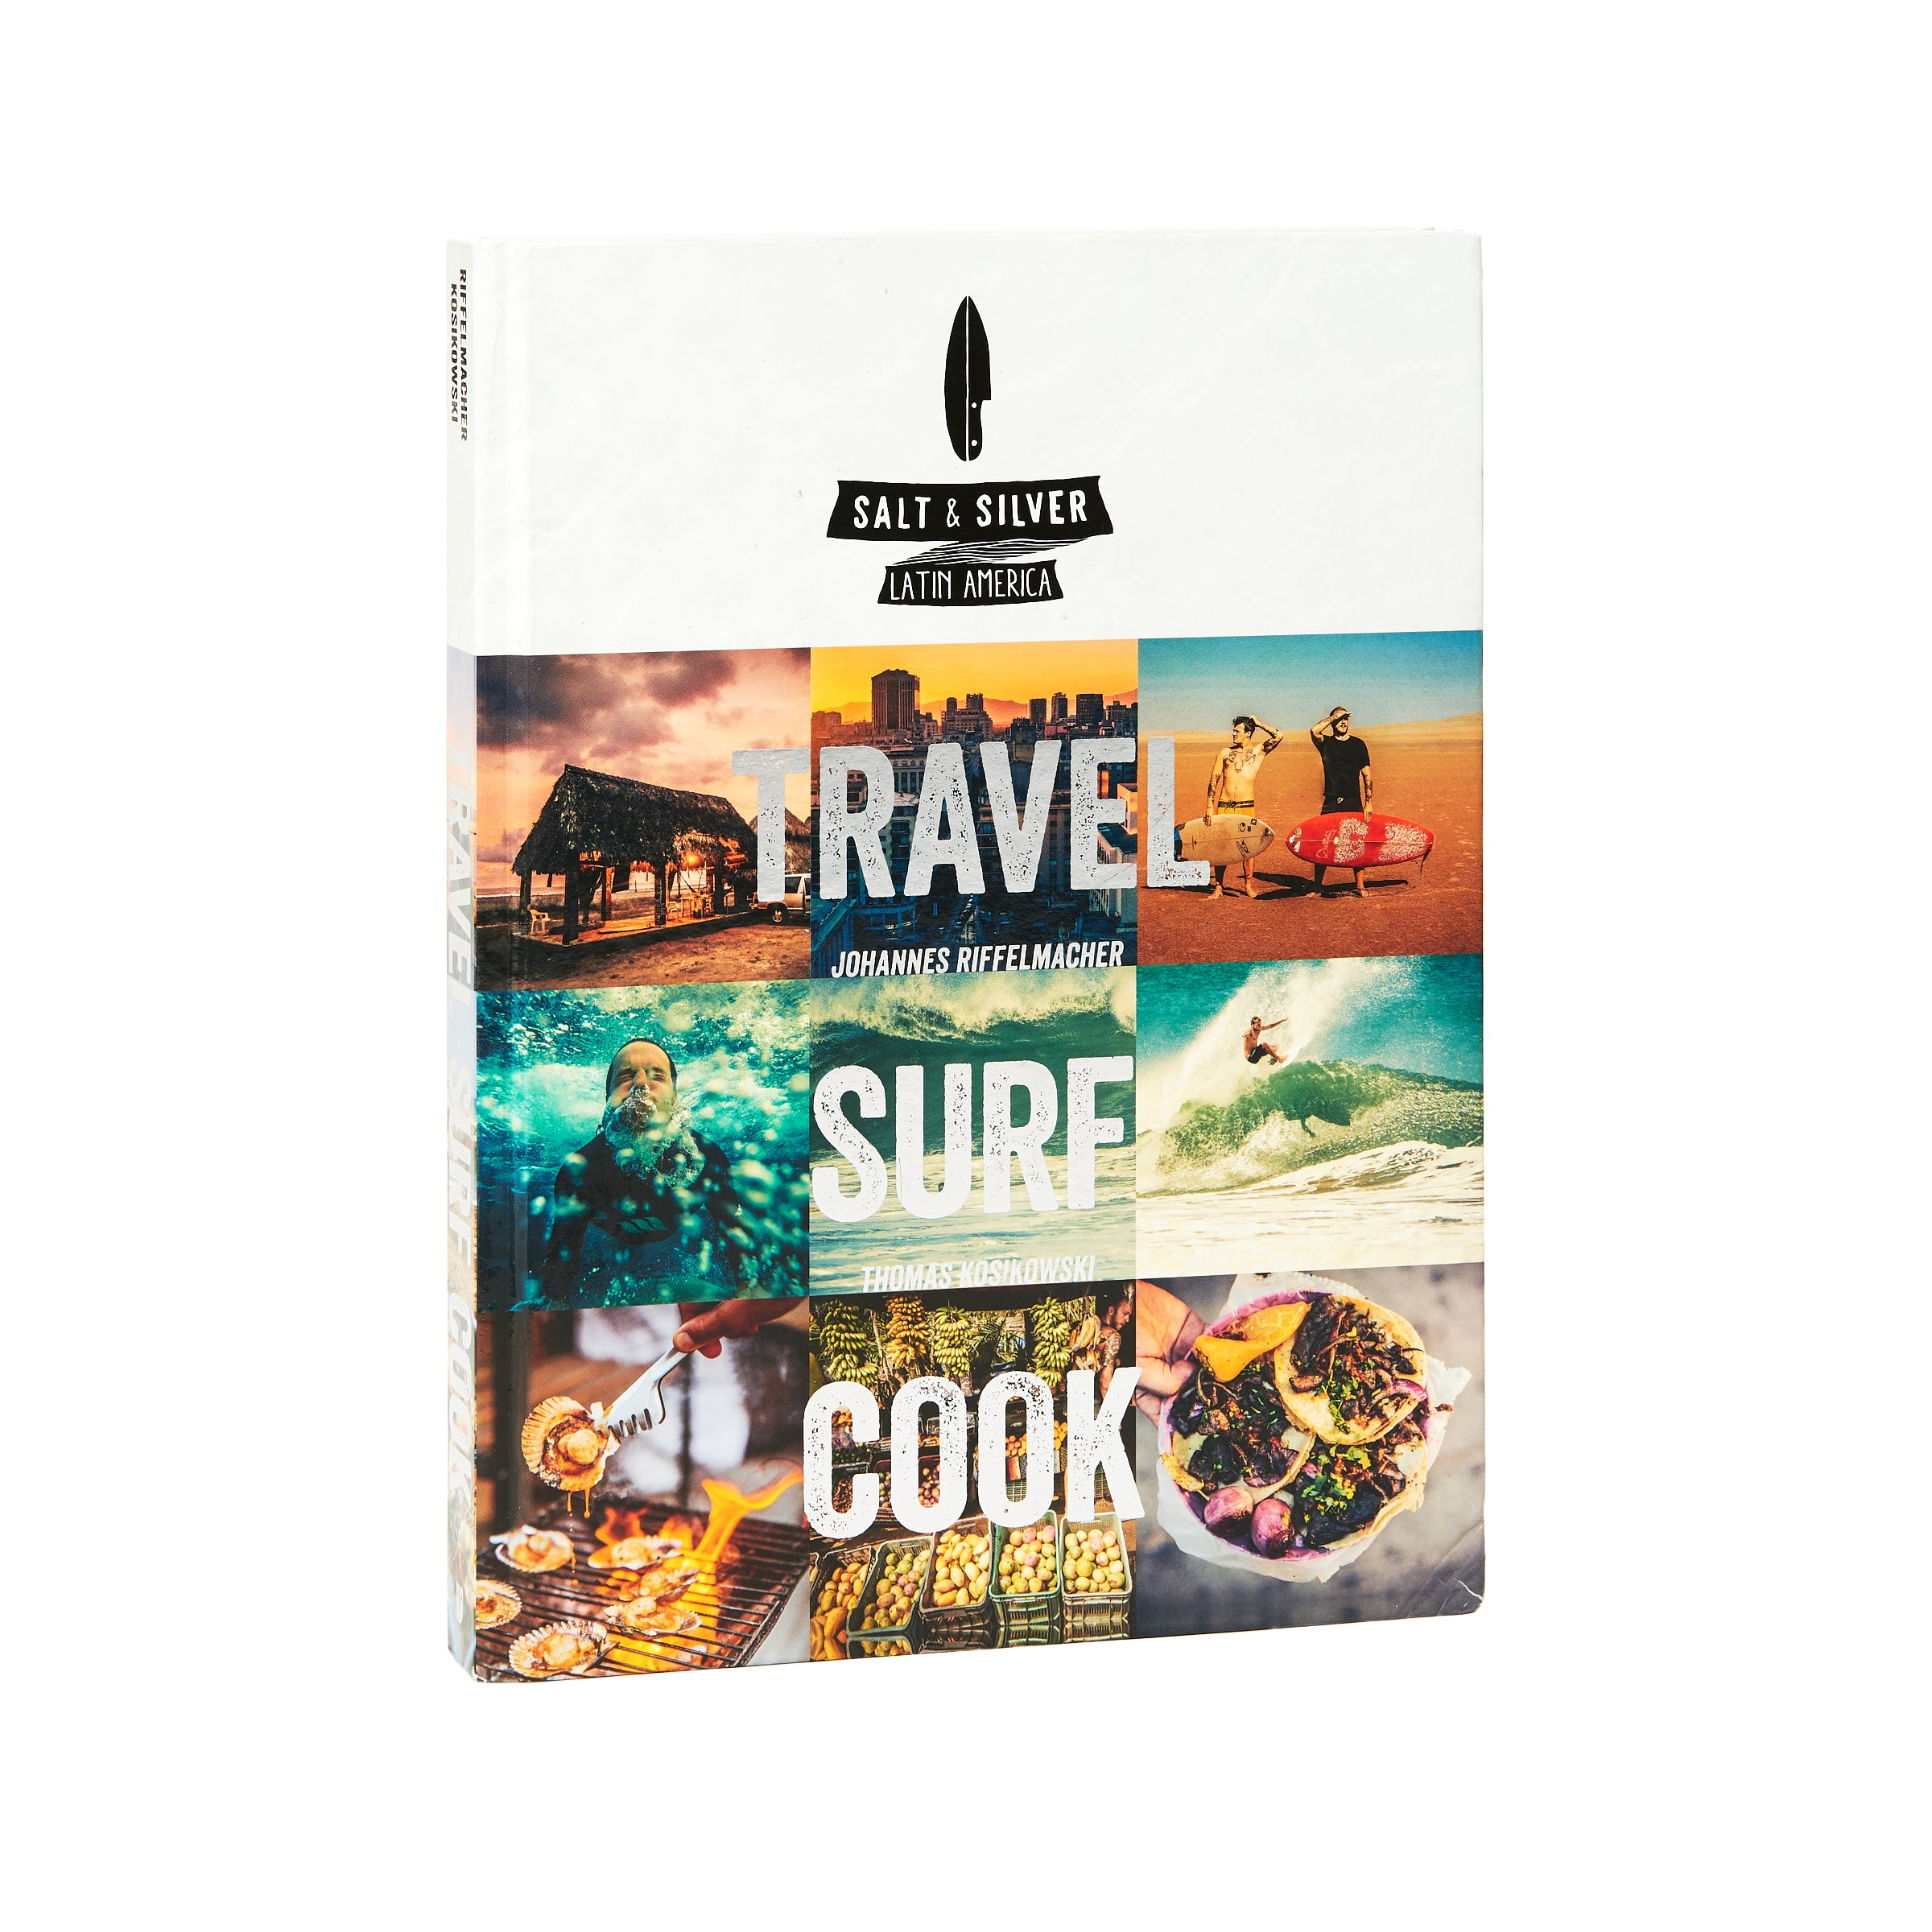 Salt & Silver -  Travel, Surf, Cook